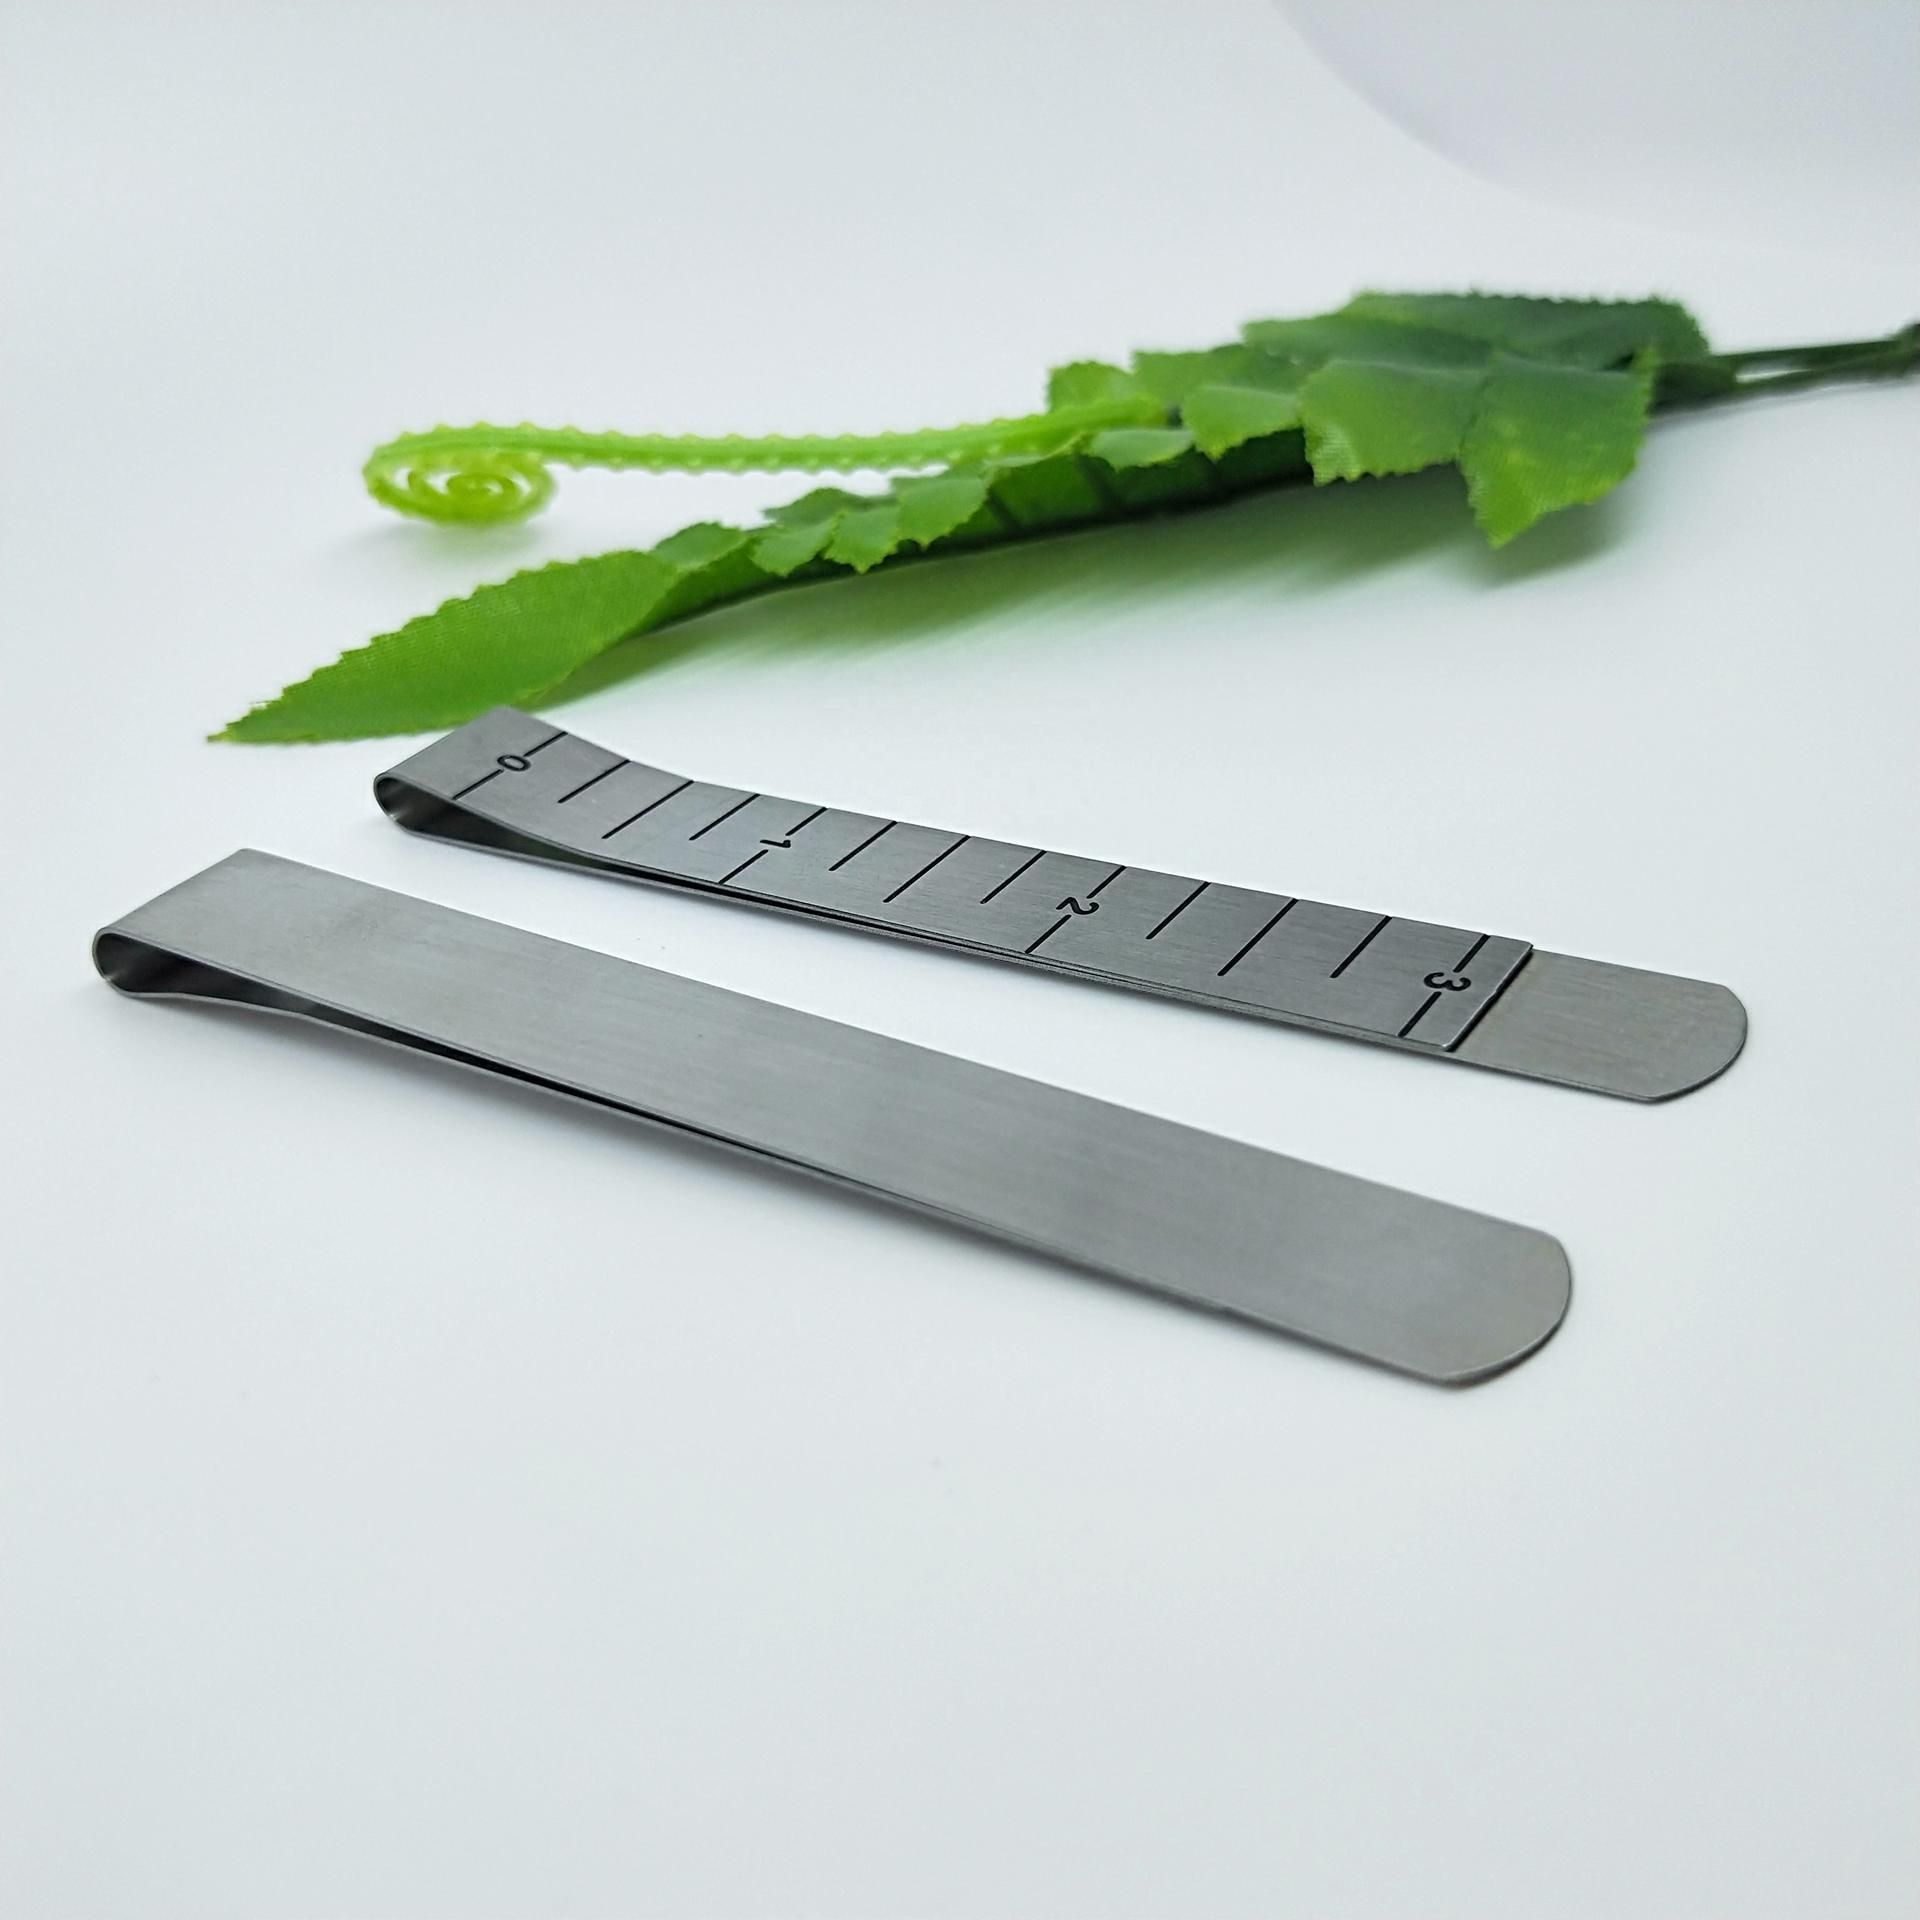 304 stainless steel customized money clip with logo,money holder clip